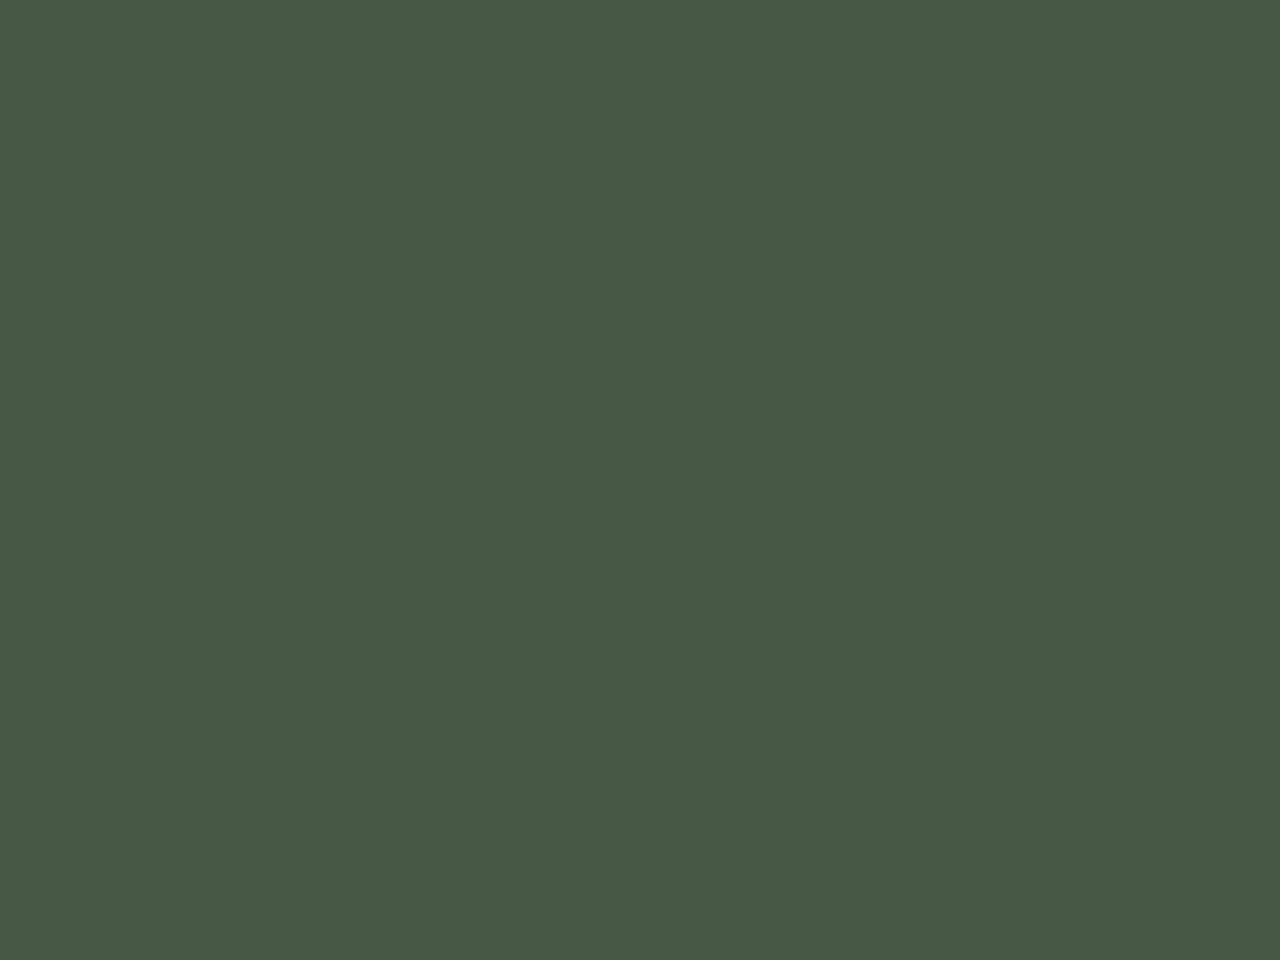 1280x960 Gray-asparagus Solid Color Background